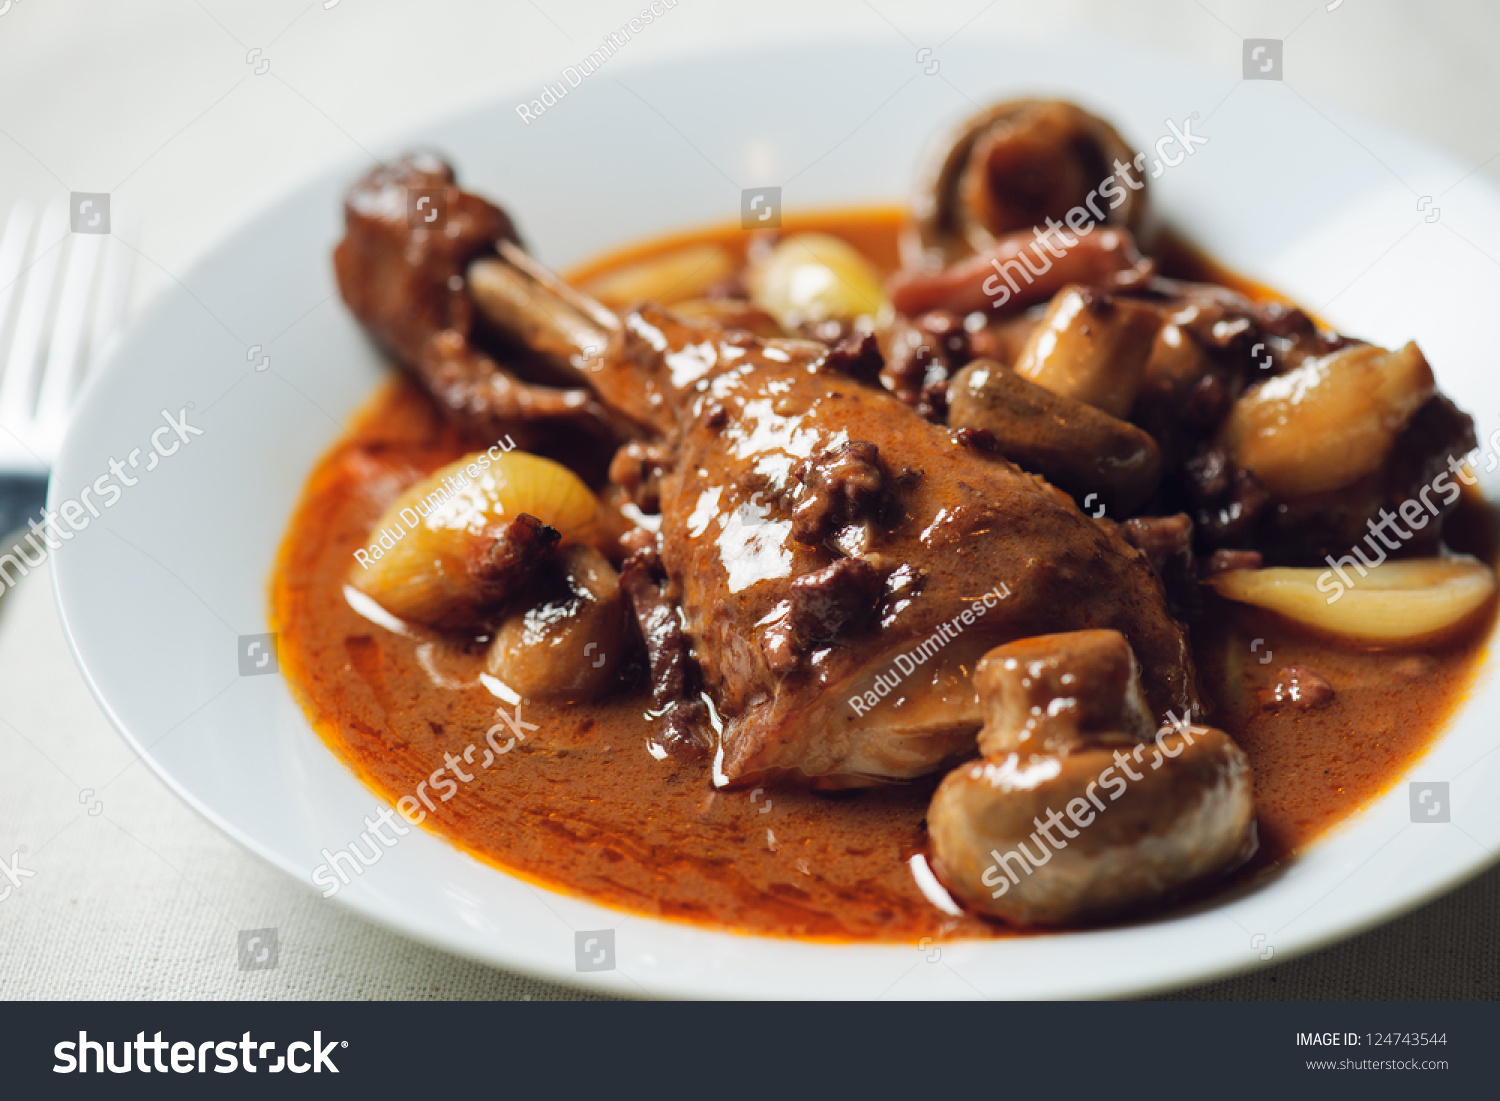 French coq au vin fine french stock photo 124743544 - French cuisine definition ...